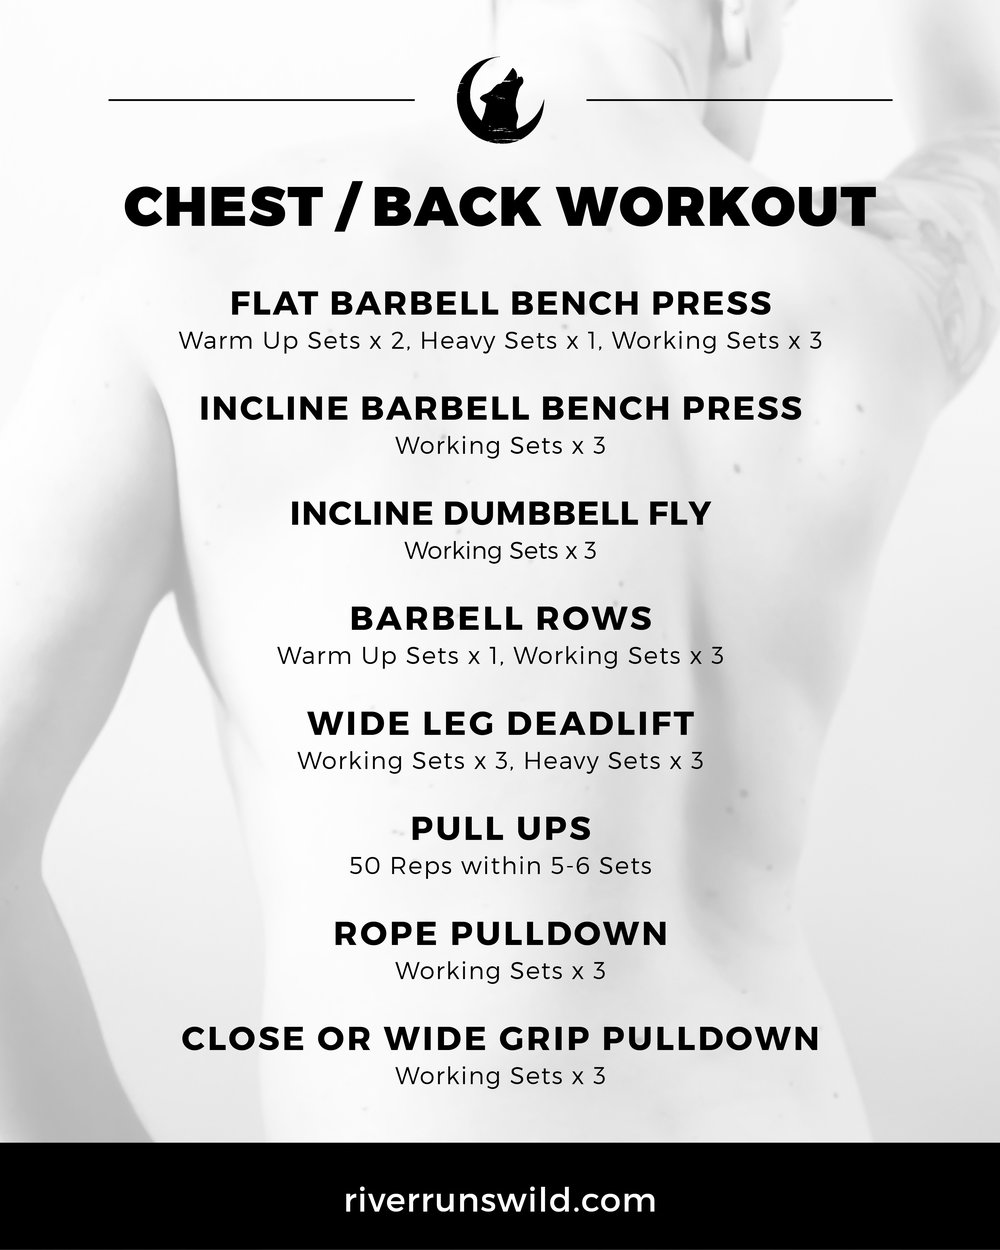 Feel free to save or share this workout!